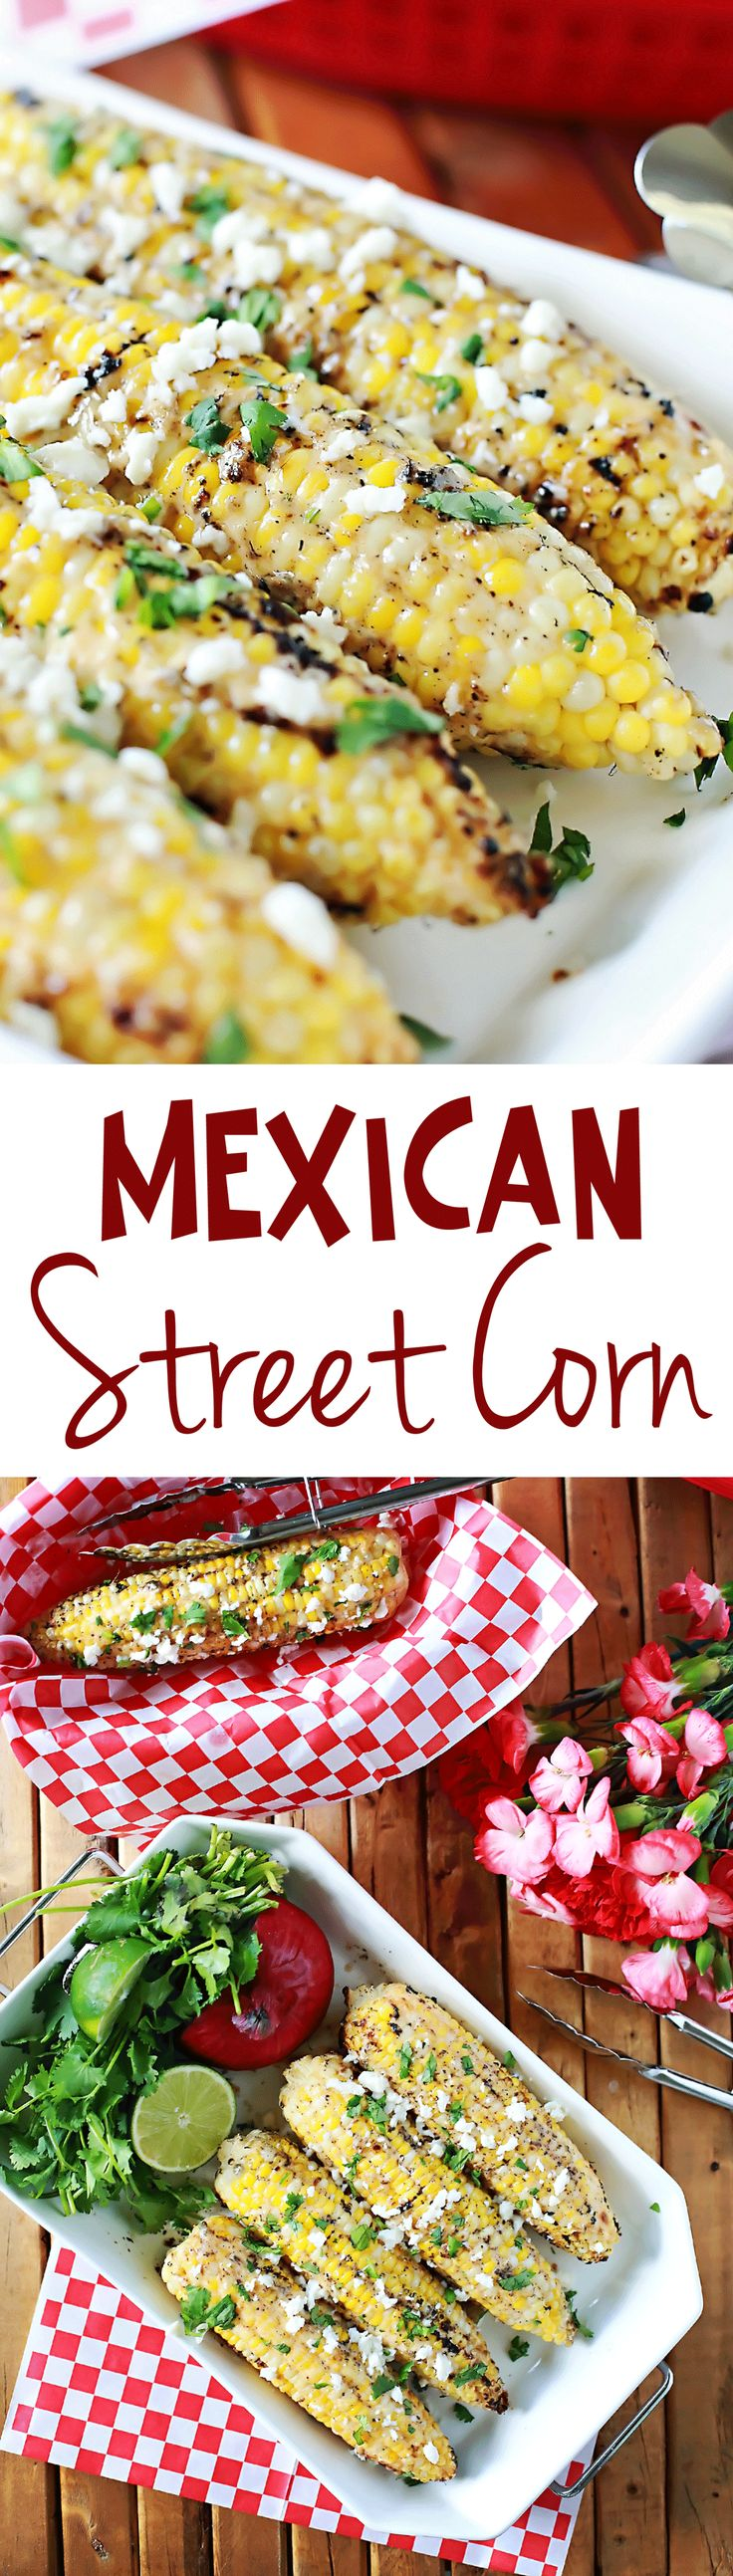 Amazing Grilled corn, Mexican Stree corn recipe by Flirting with Flavor!